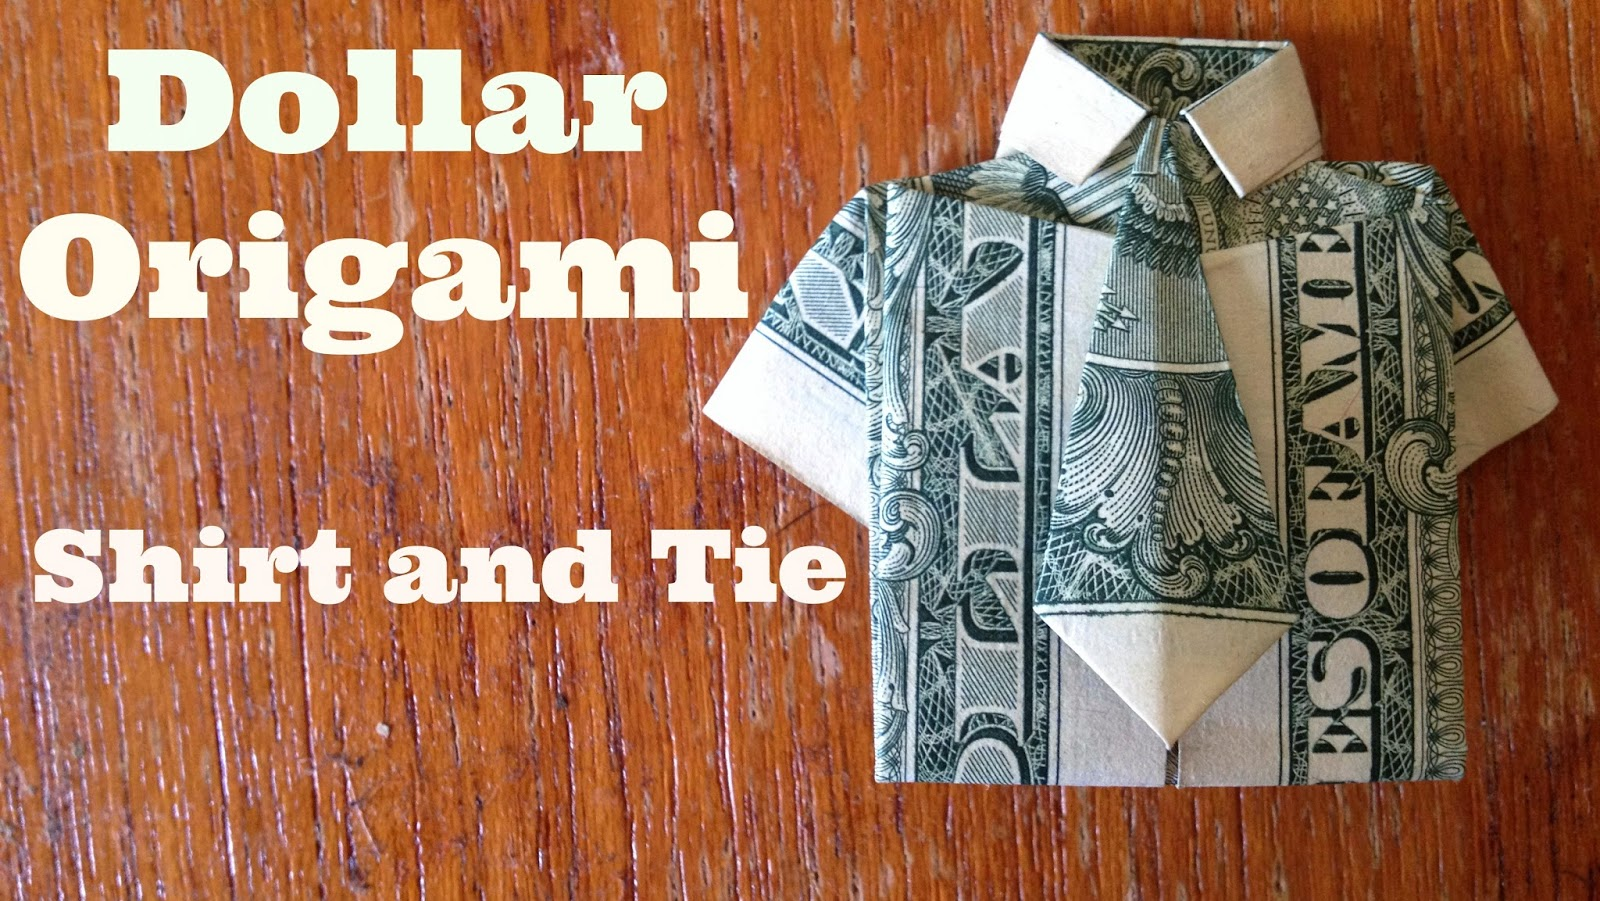 Dollar Bill Origami: Shirt and Tie | The Best Hobbies Blog - photo#31